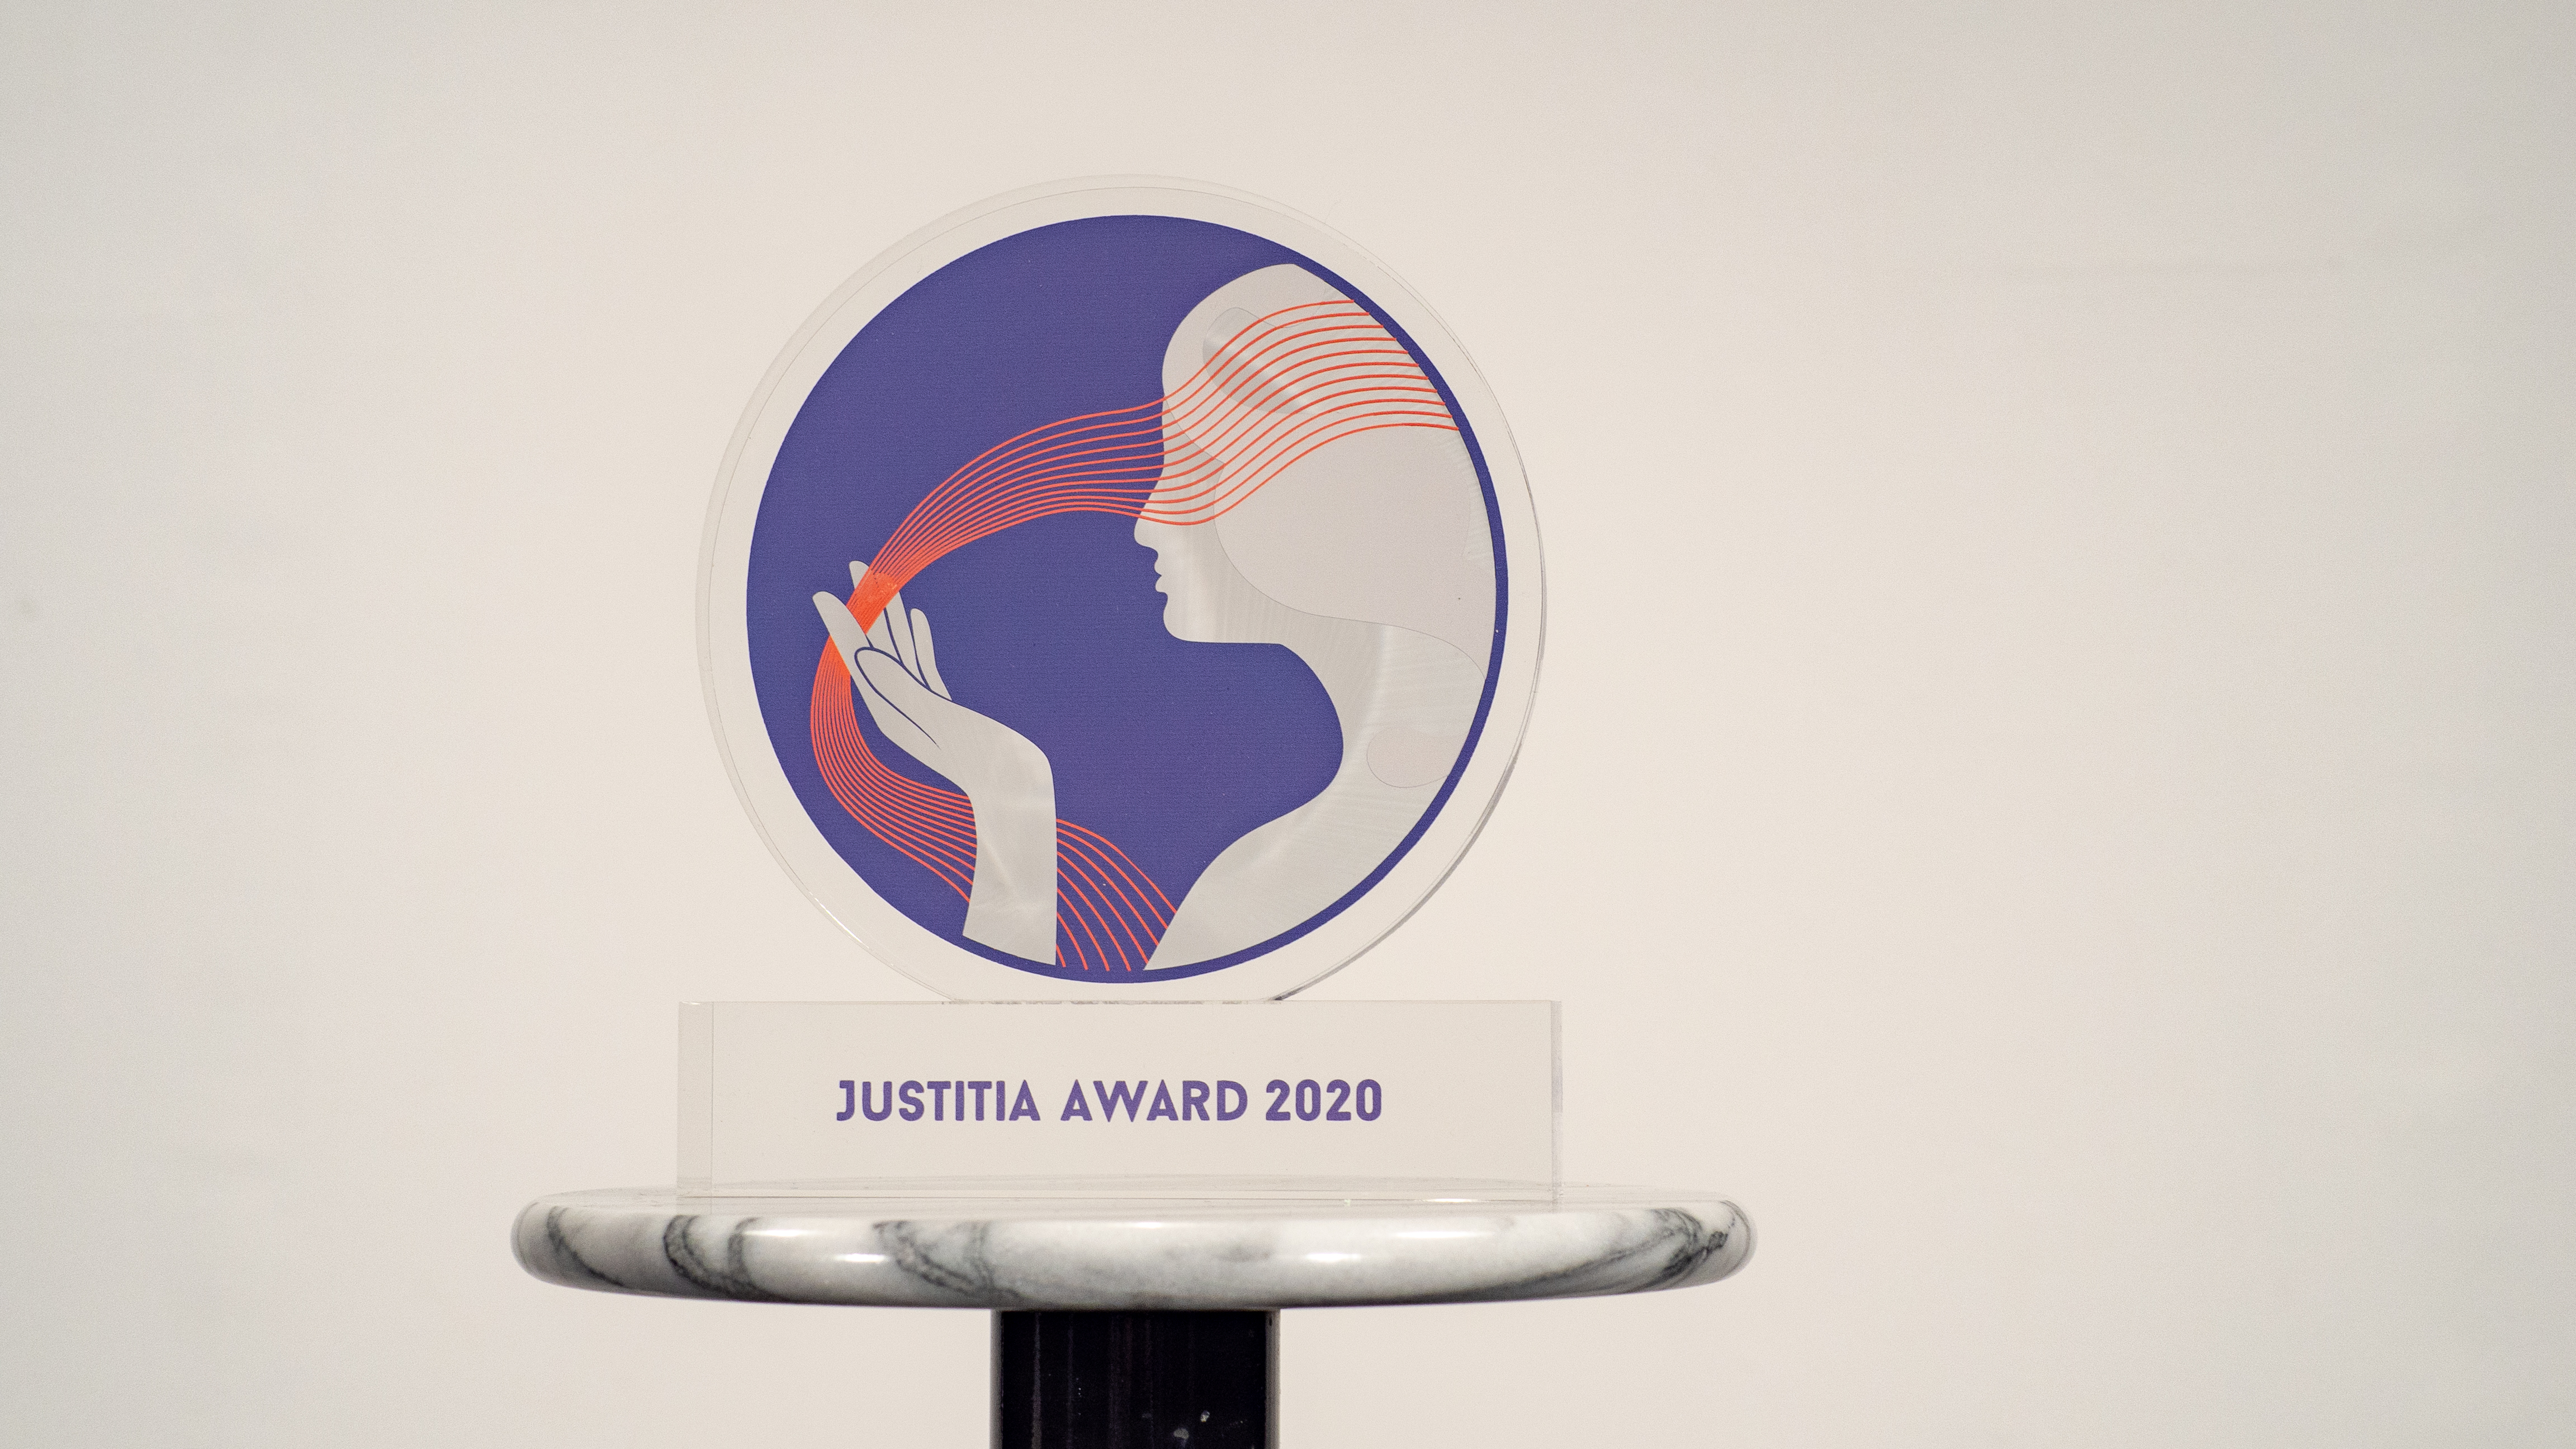 news/Justitia Awards-Verleihung an nationale und internationale Top-Juristinnen536/1.jpg